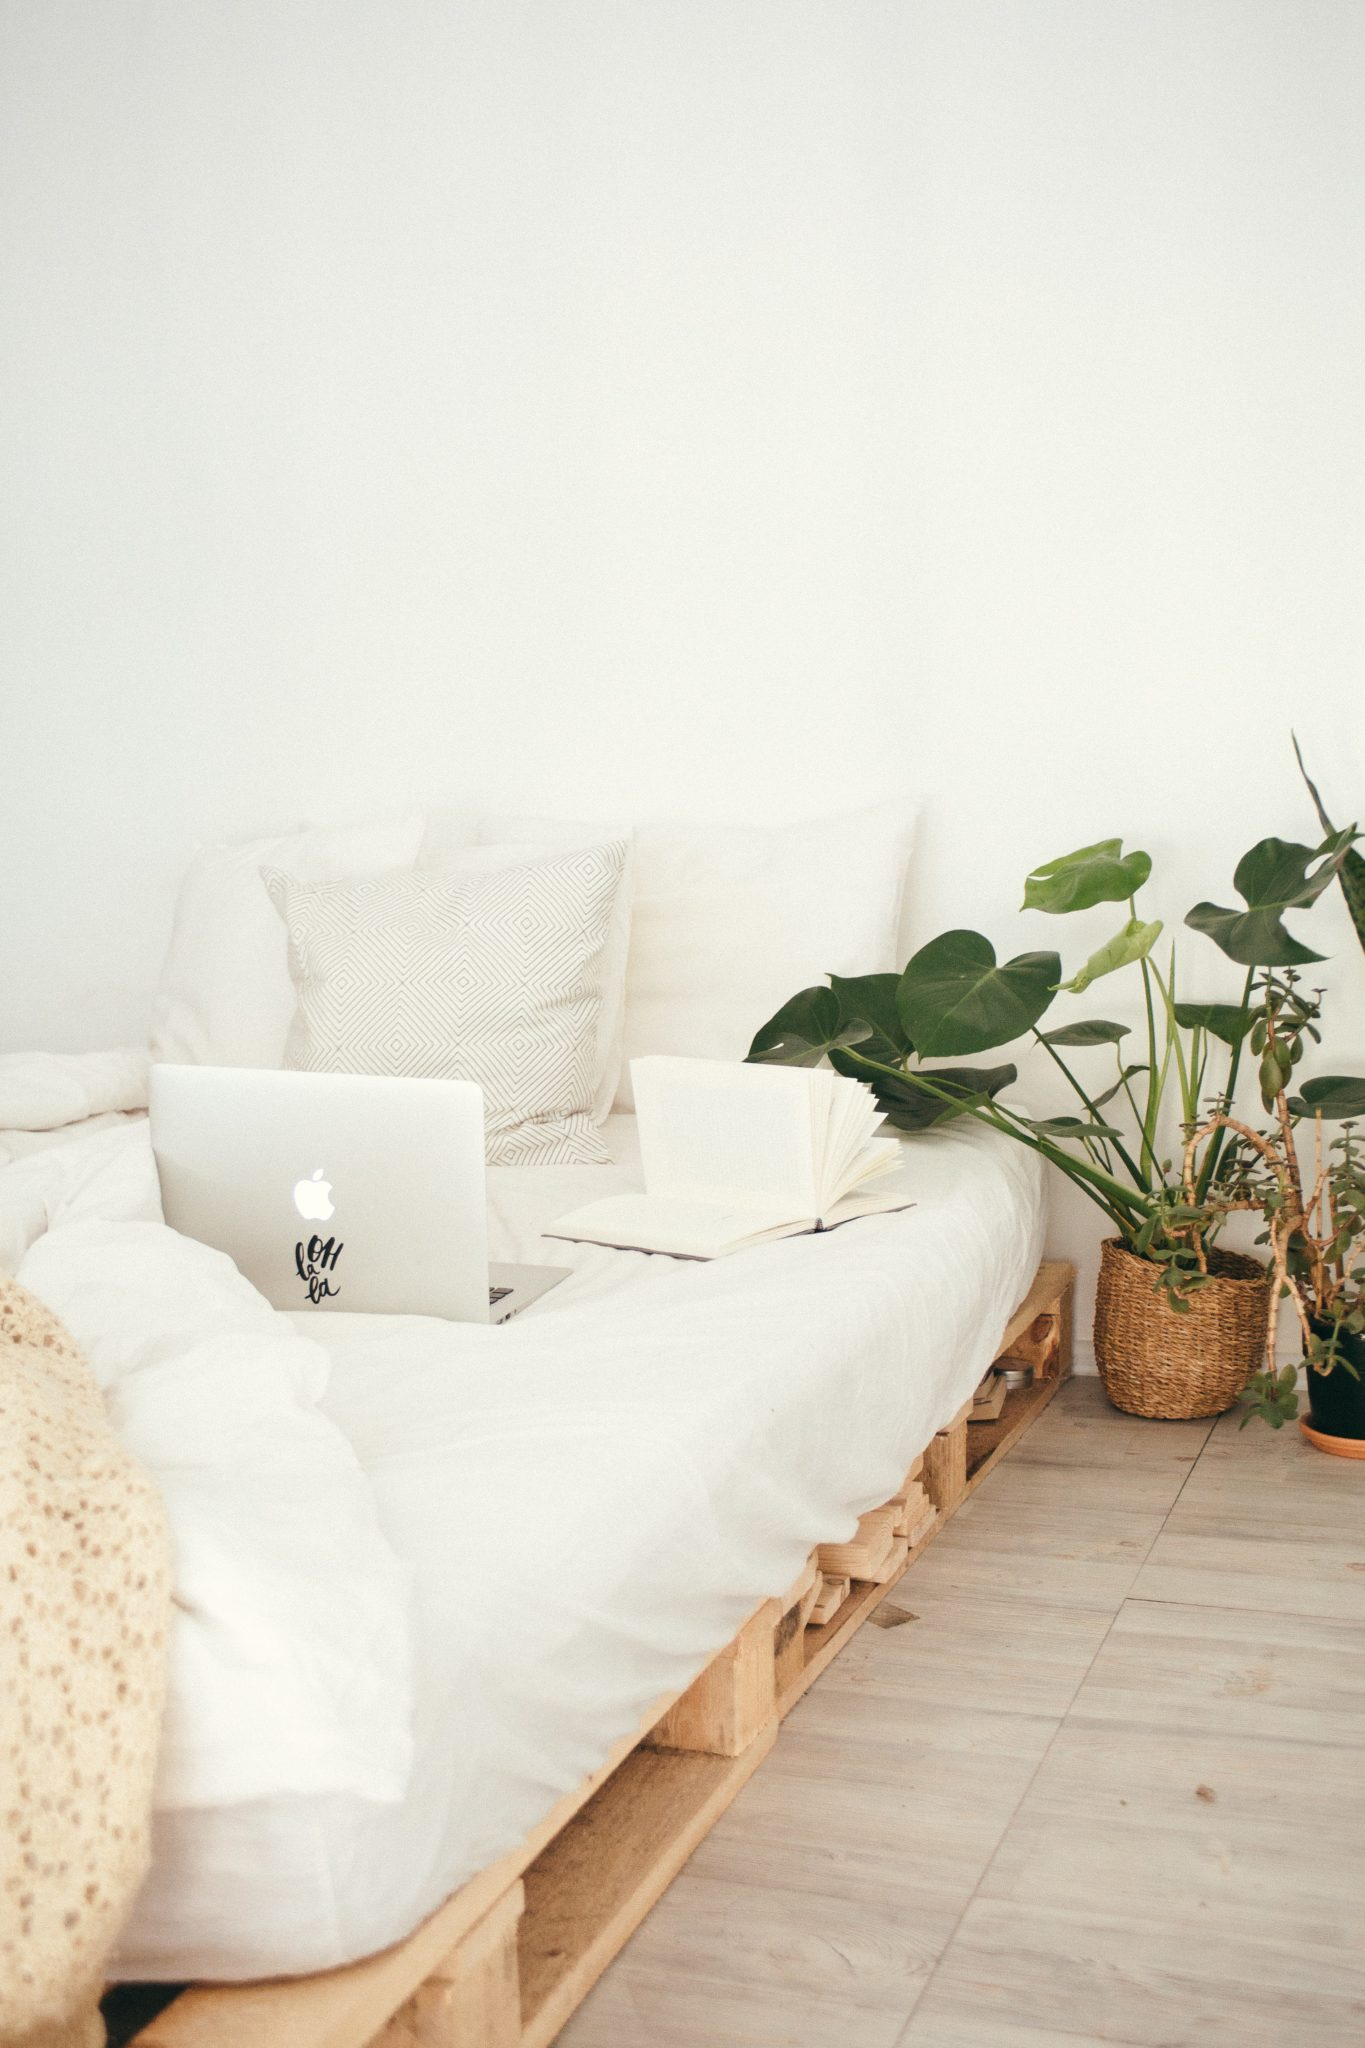 turned-on-silver-macbook-on-white-bed-916337